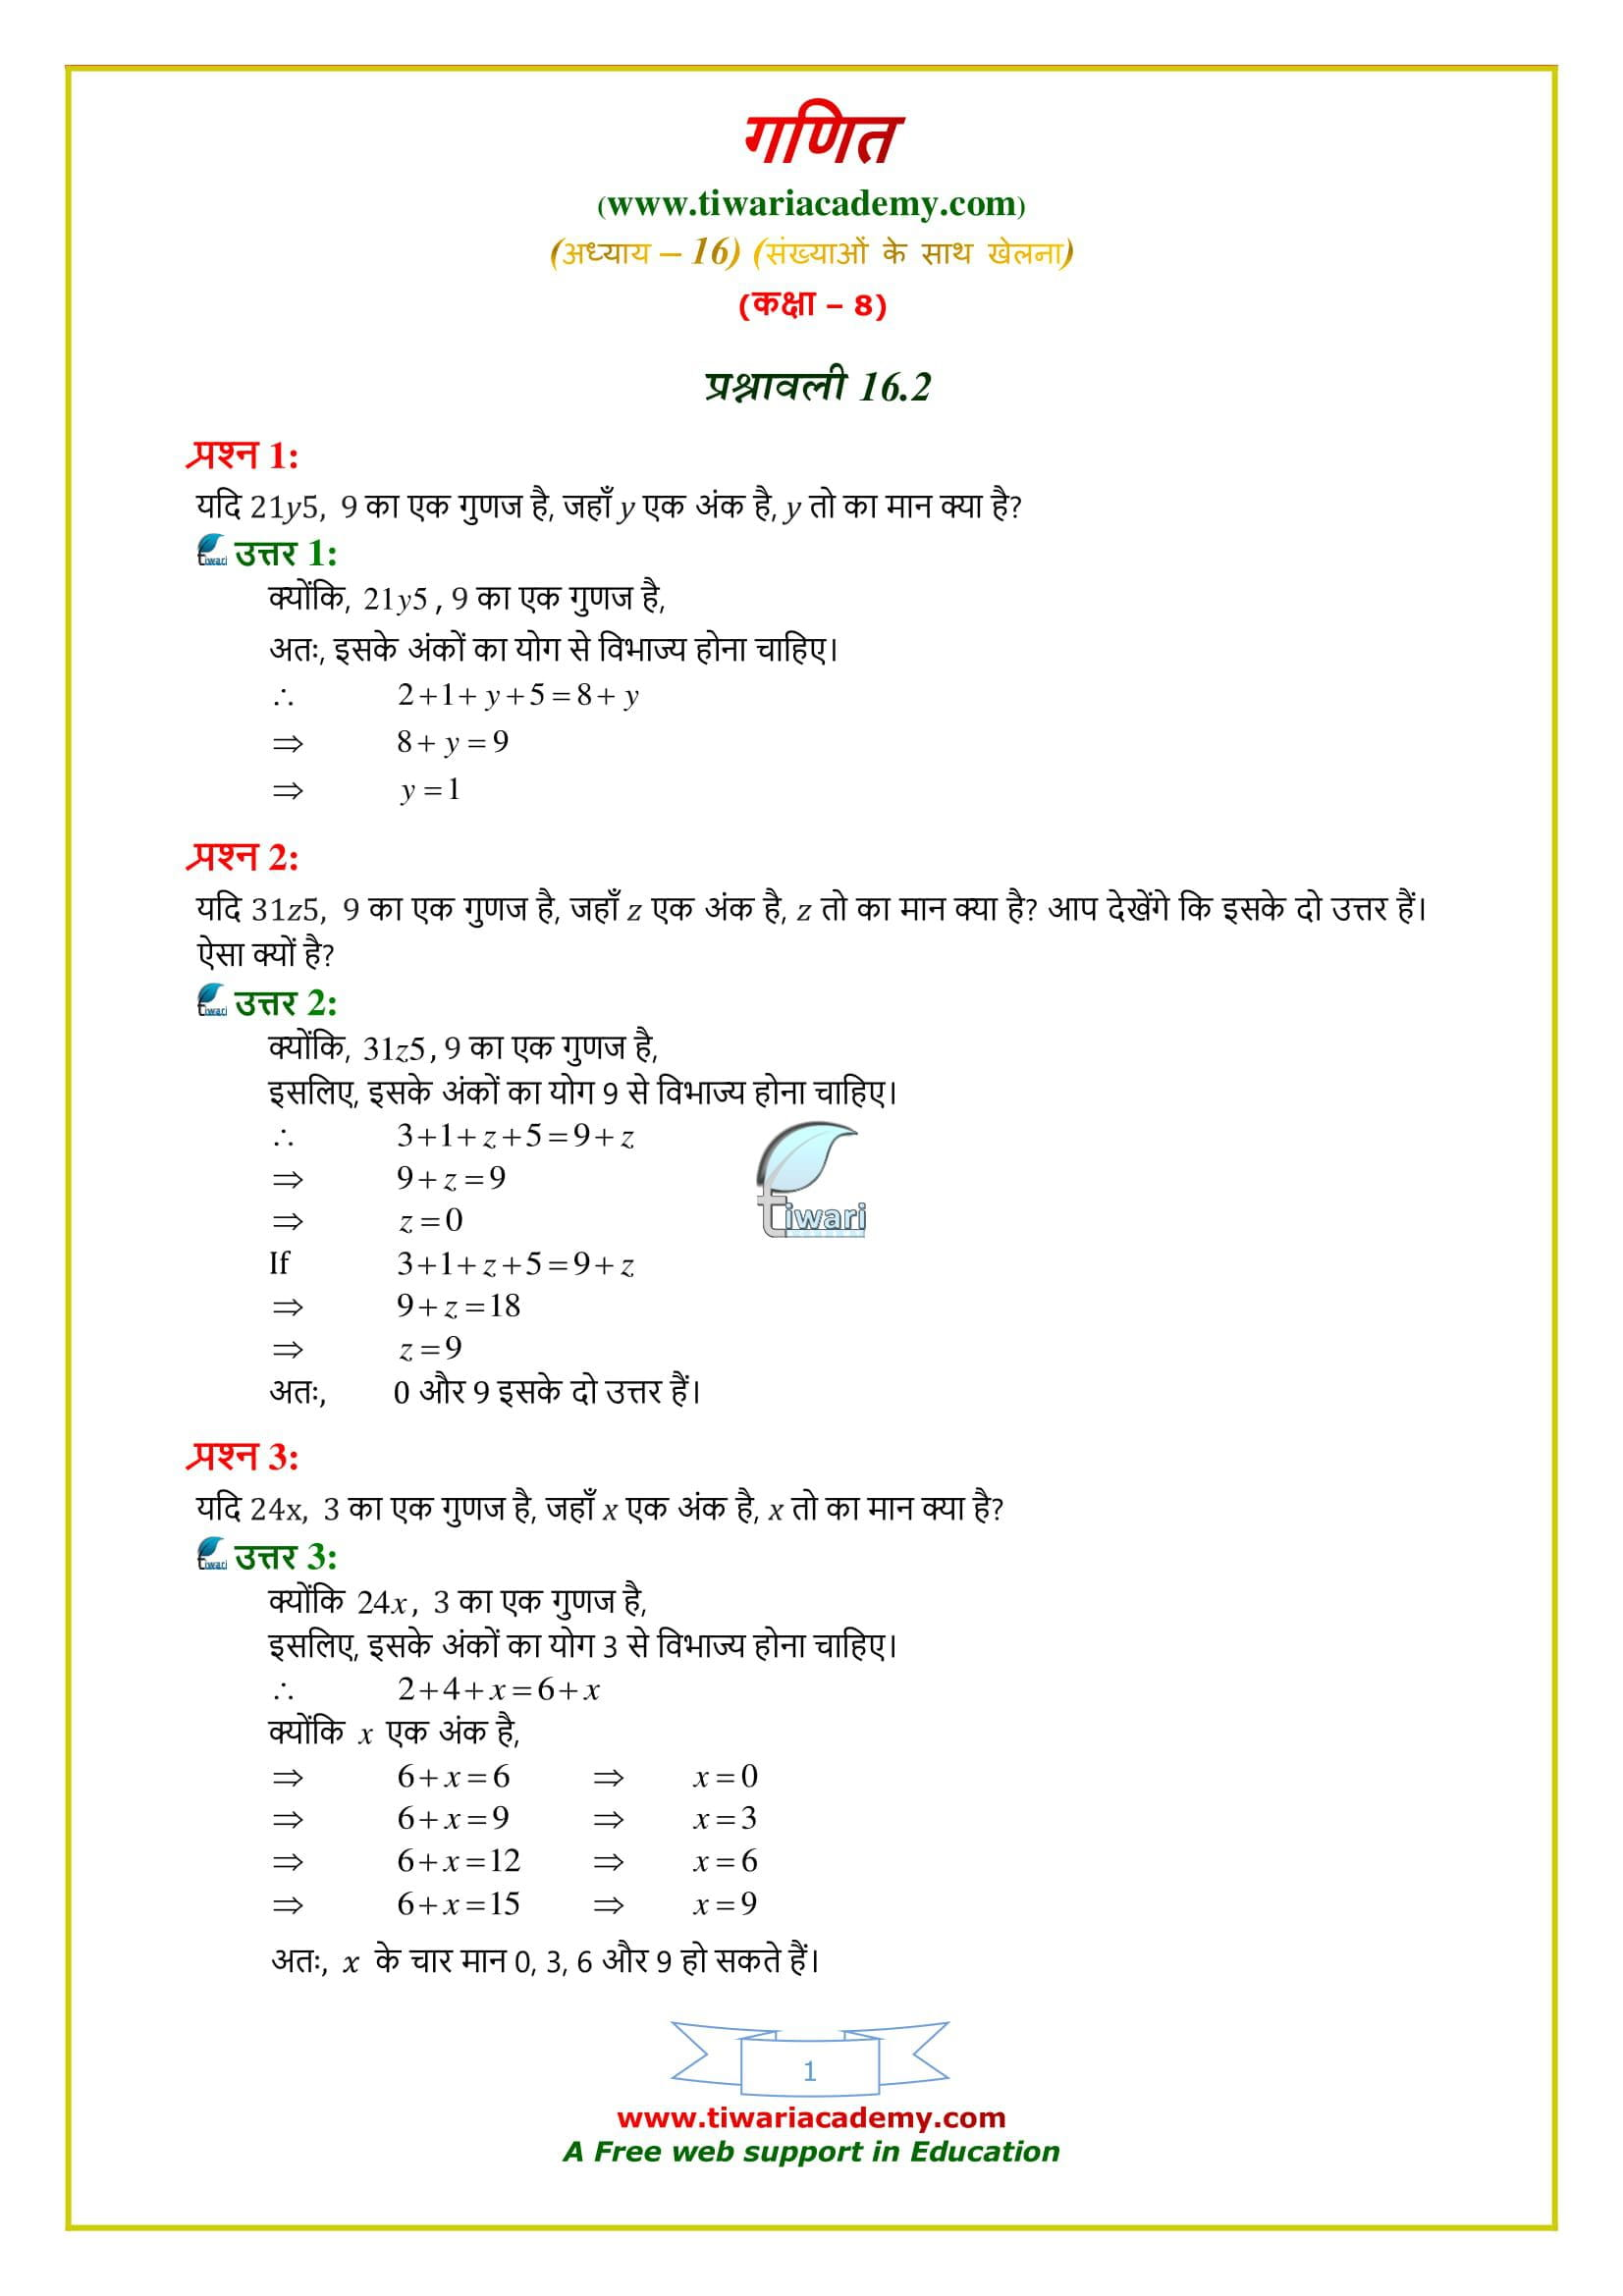 NCERT Solutions for Class 8 Maths Chapter 16 Exercise 16.2 Playing with numbers in hindi medium